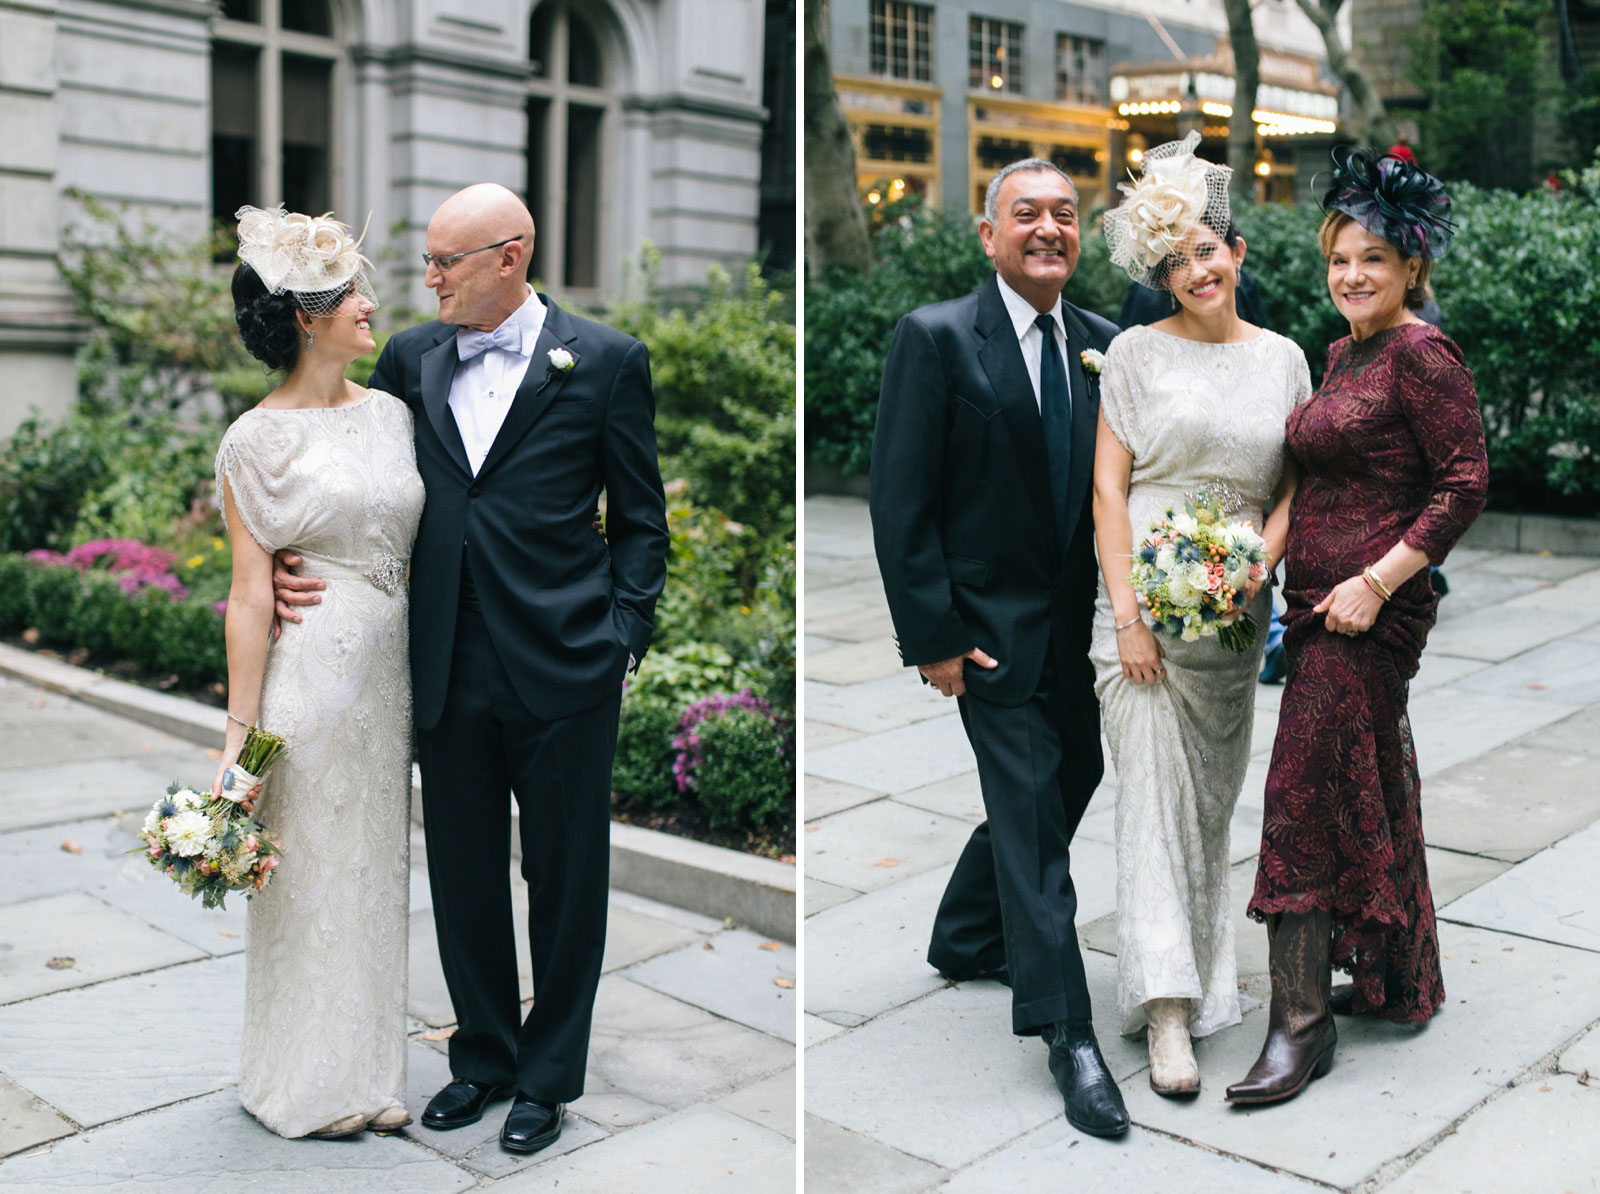 candid shot of bride smiling with her father, bride's family showing off cowboy boots